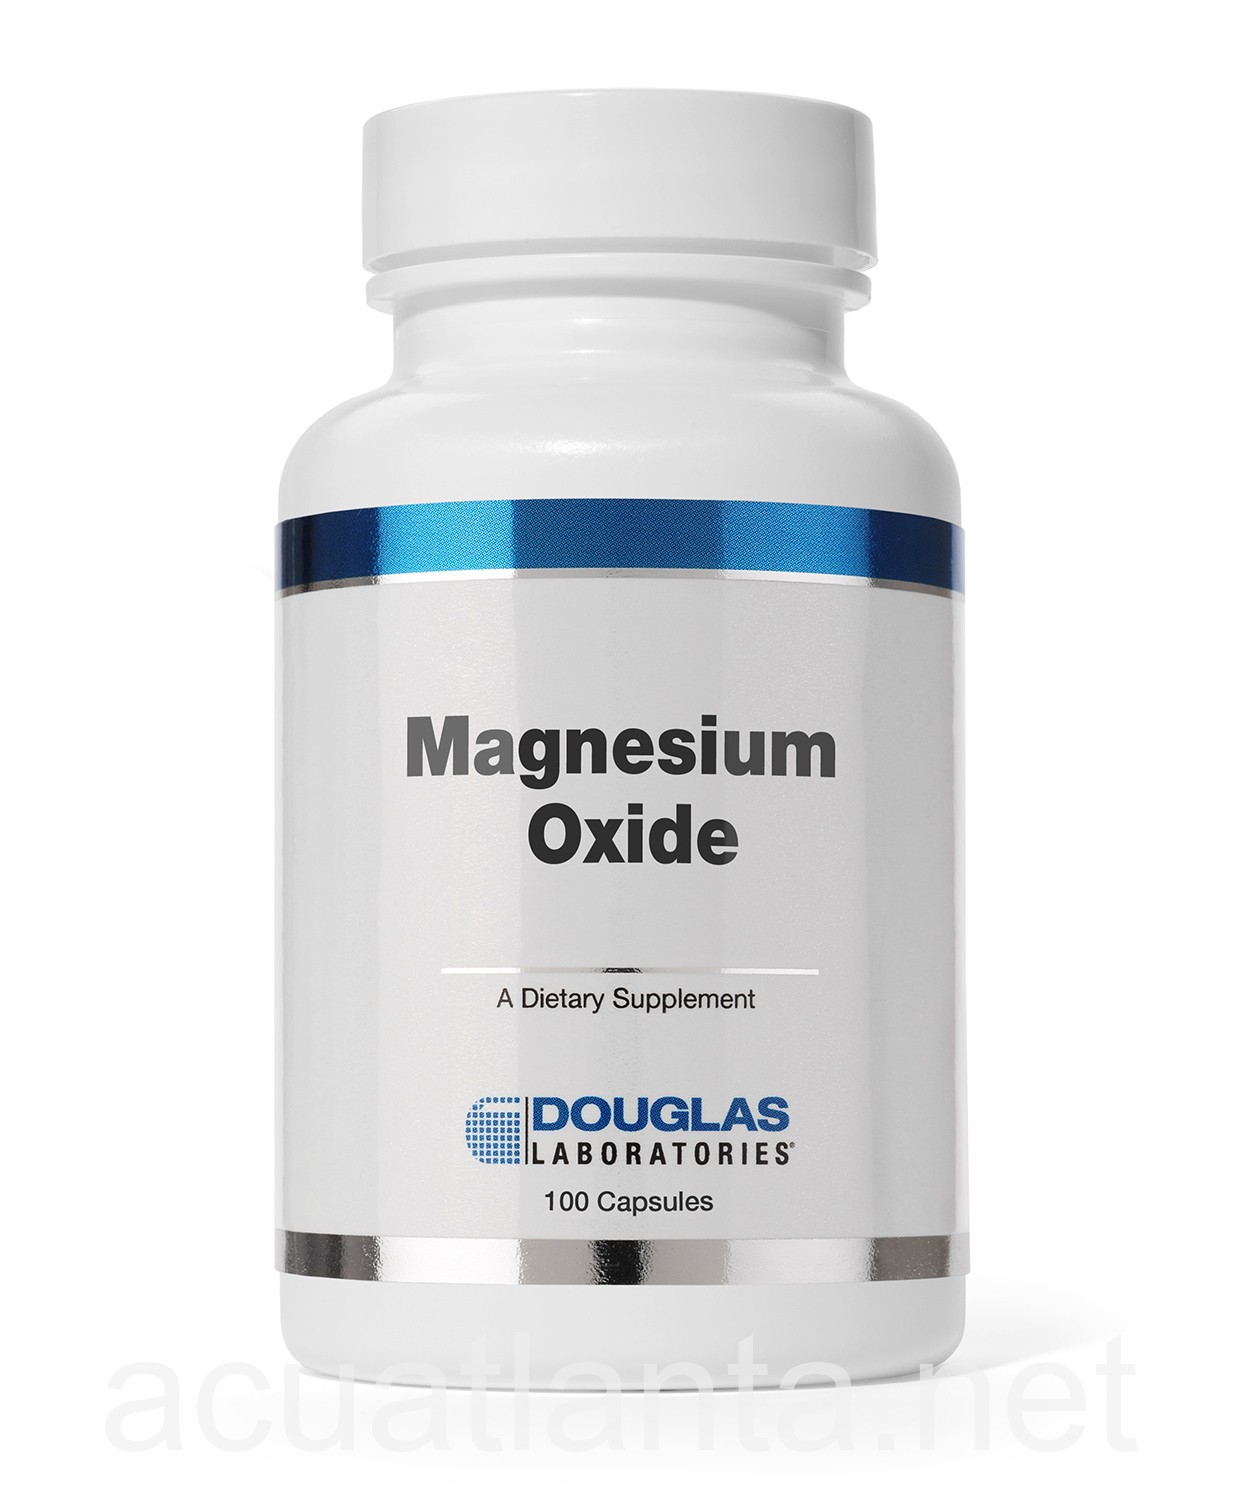 Magnesium Oxide Uses : Magnesium oxide capsules milligrams by douglas